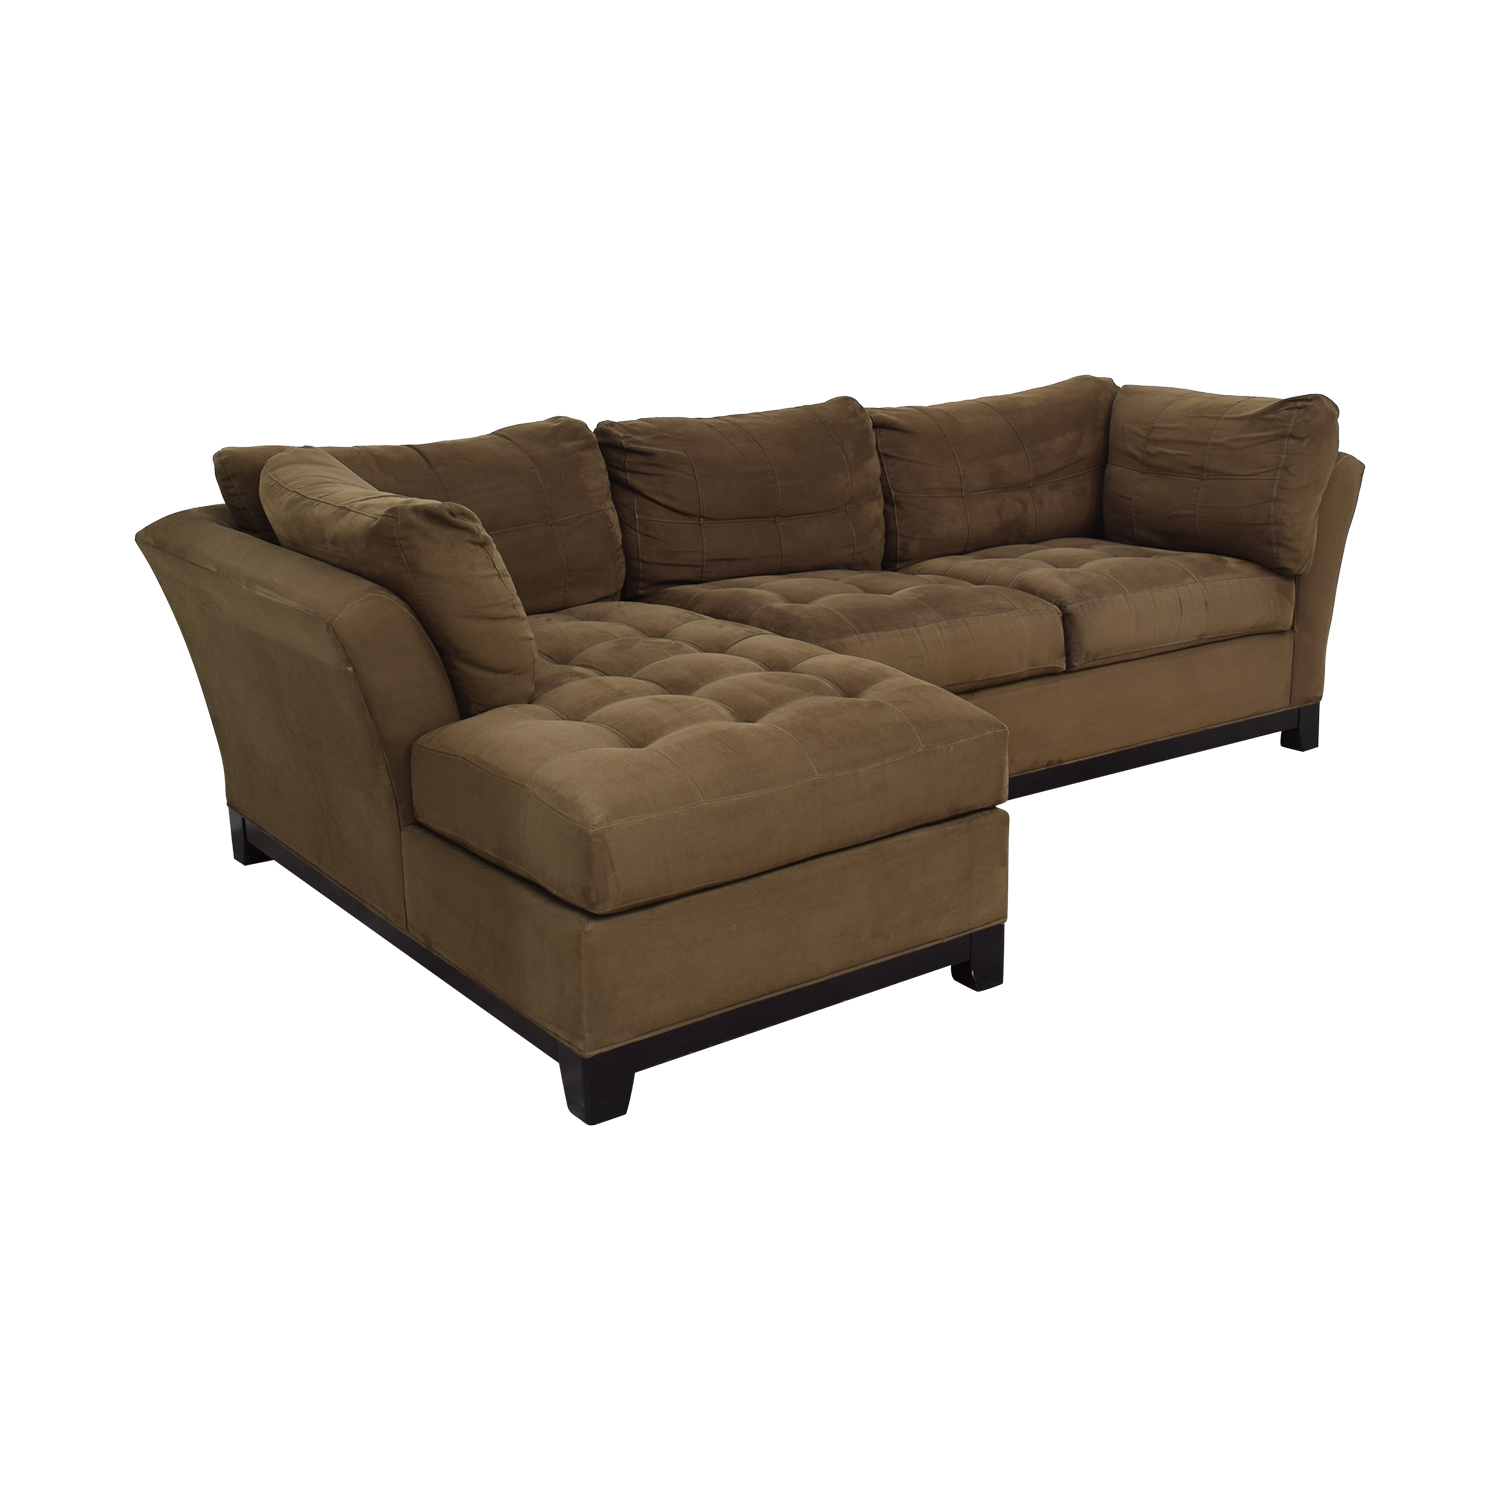 Cindy Crawford Home Metropolis Sectional Sofa Cindy Crawford Home